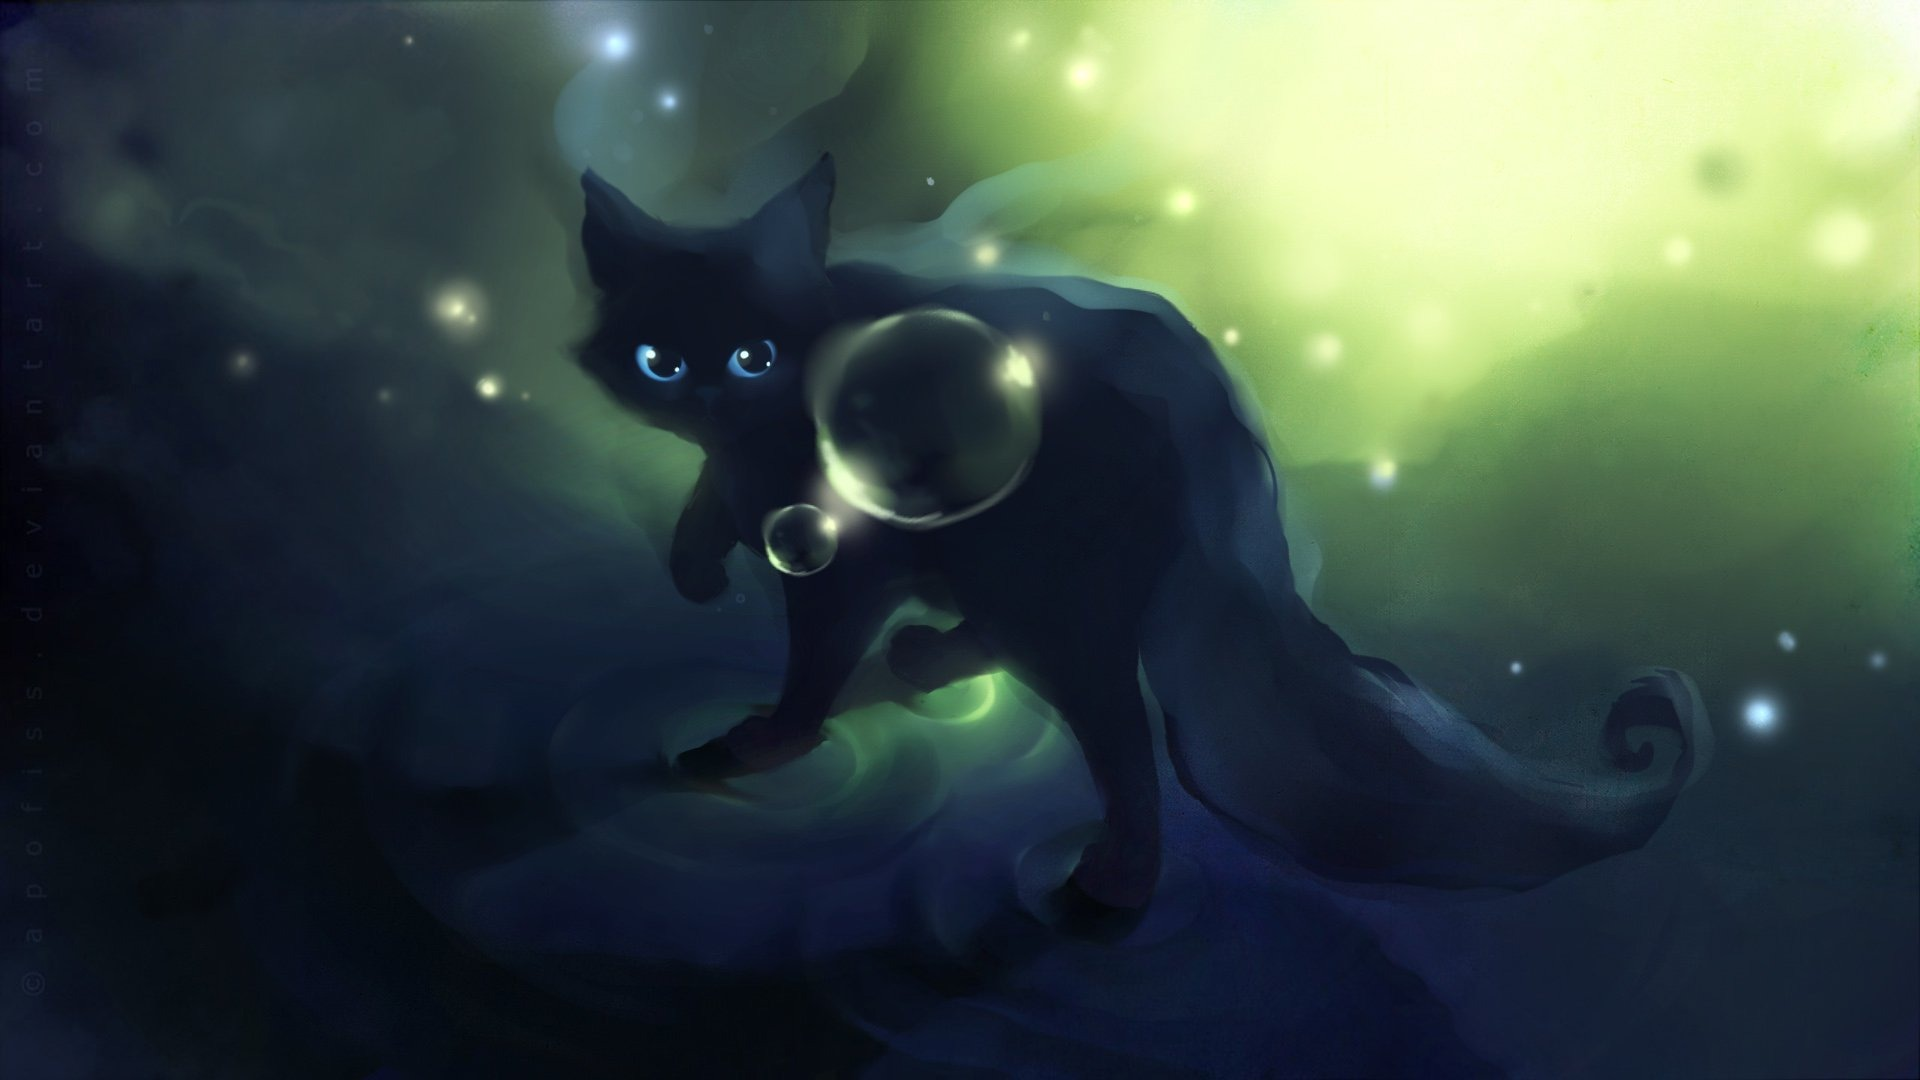 Apofiss-small-black-cat-watercolor-illustrations-1920x1080-wallpaper-wp3602641